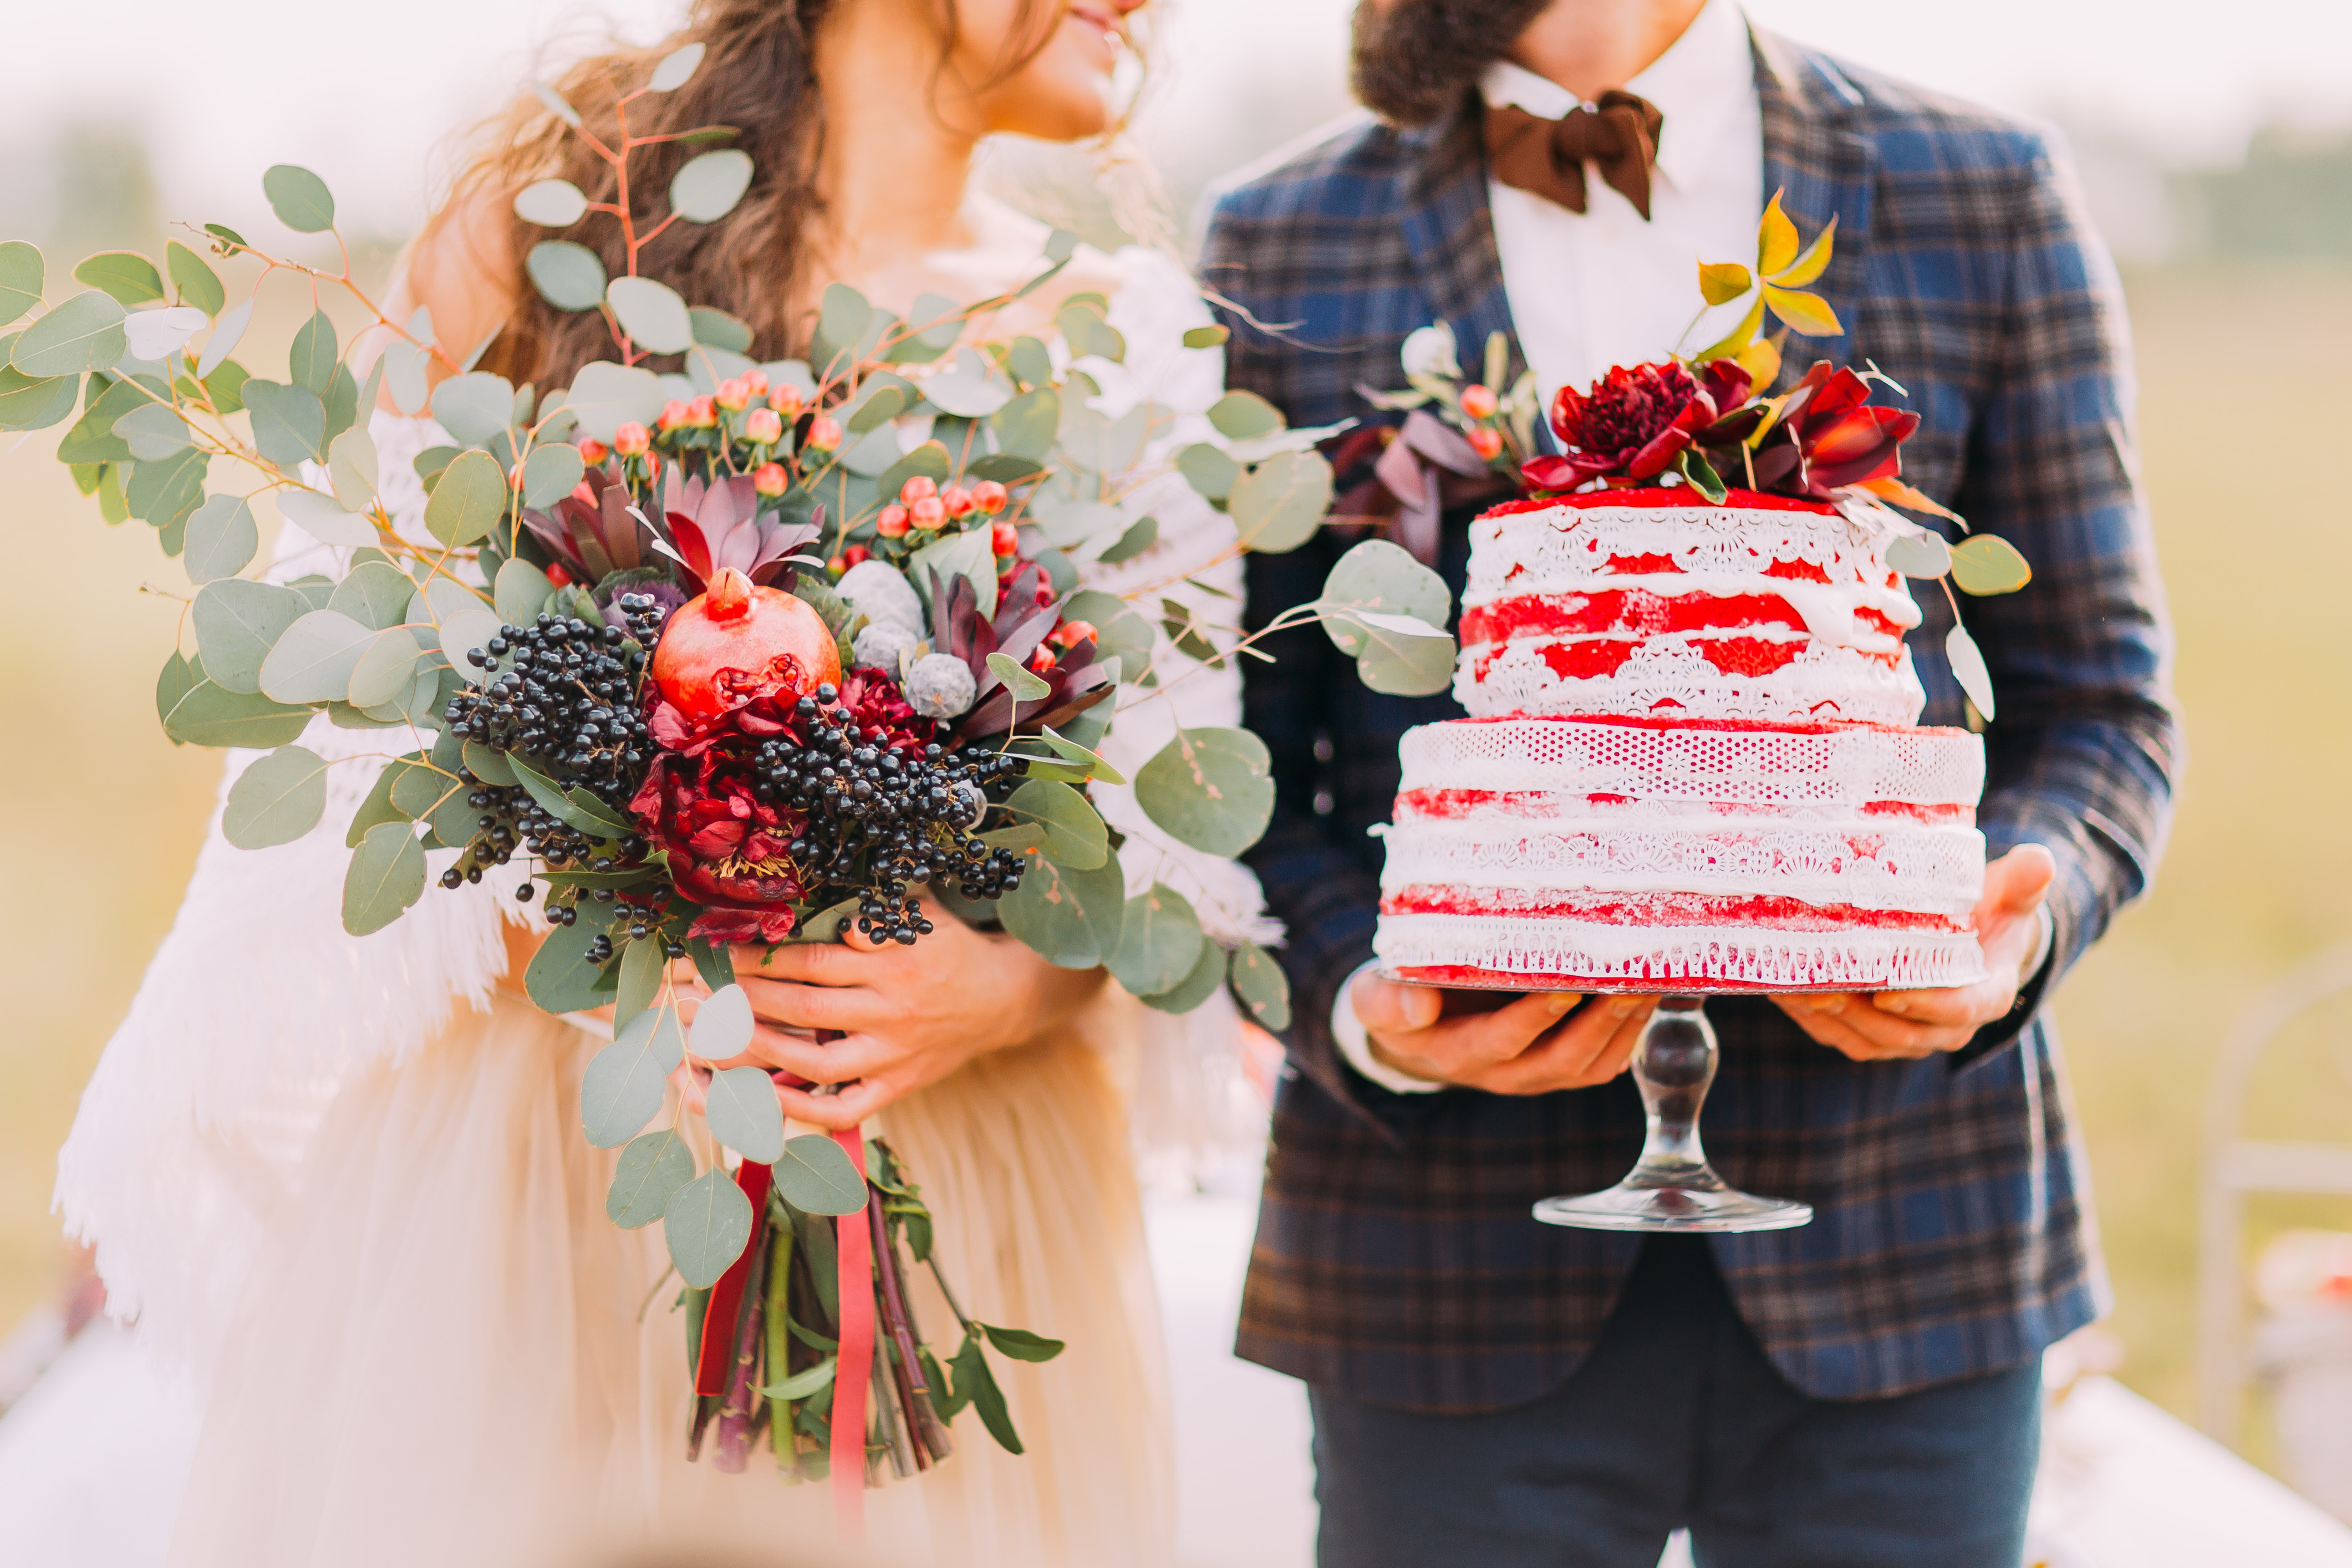 Wedding couple carrying rustic bouquet with berries and foliage and red tiers wedding cake adorned with flowers